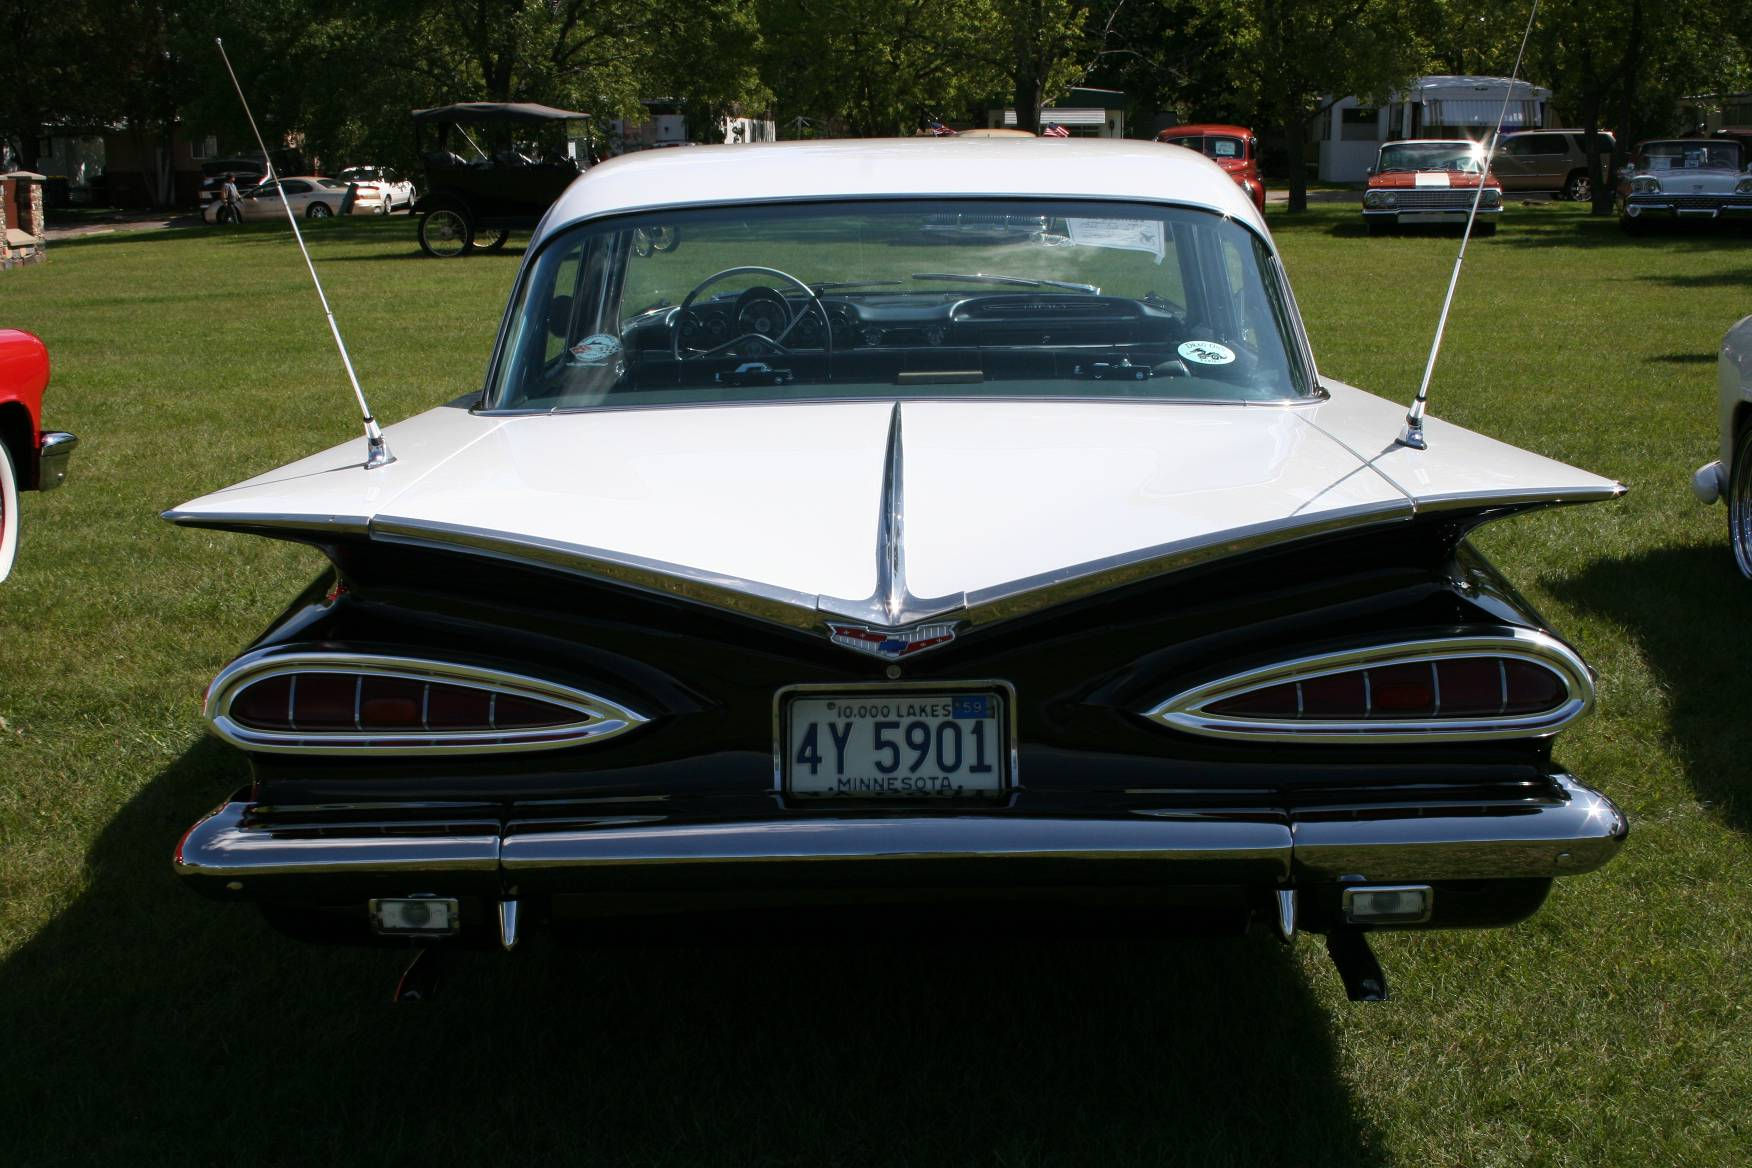 back shot of Tim Swanson's 1959 Chevy Impala.